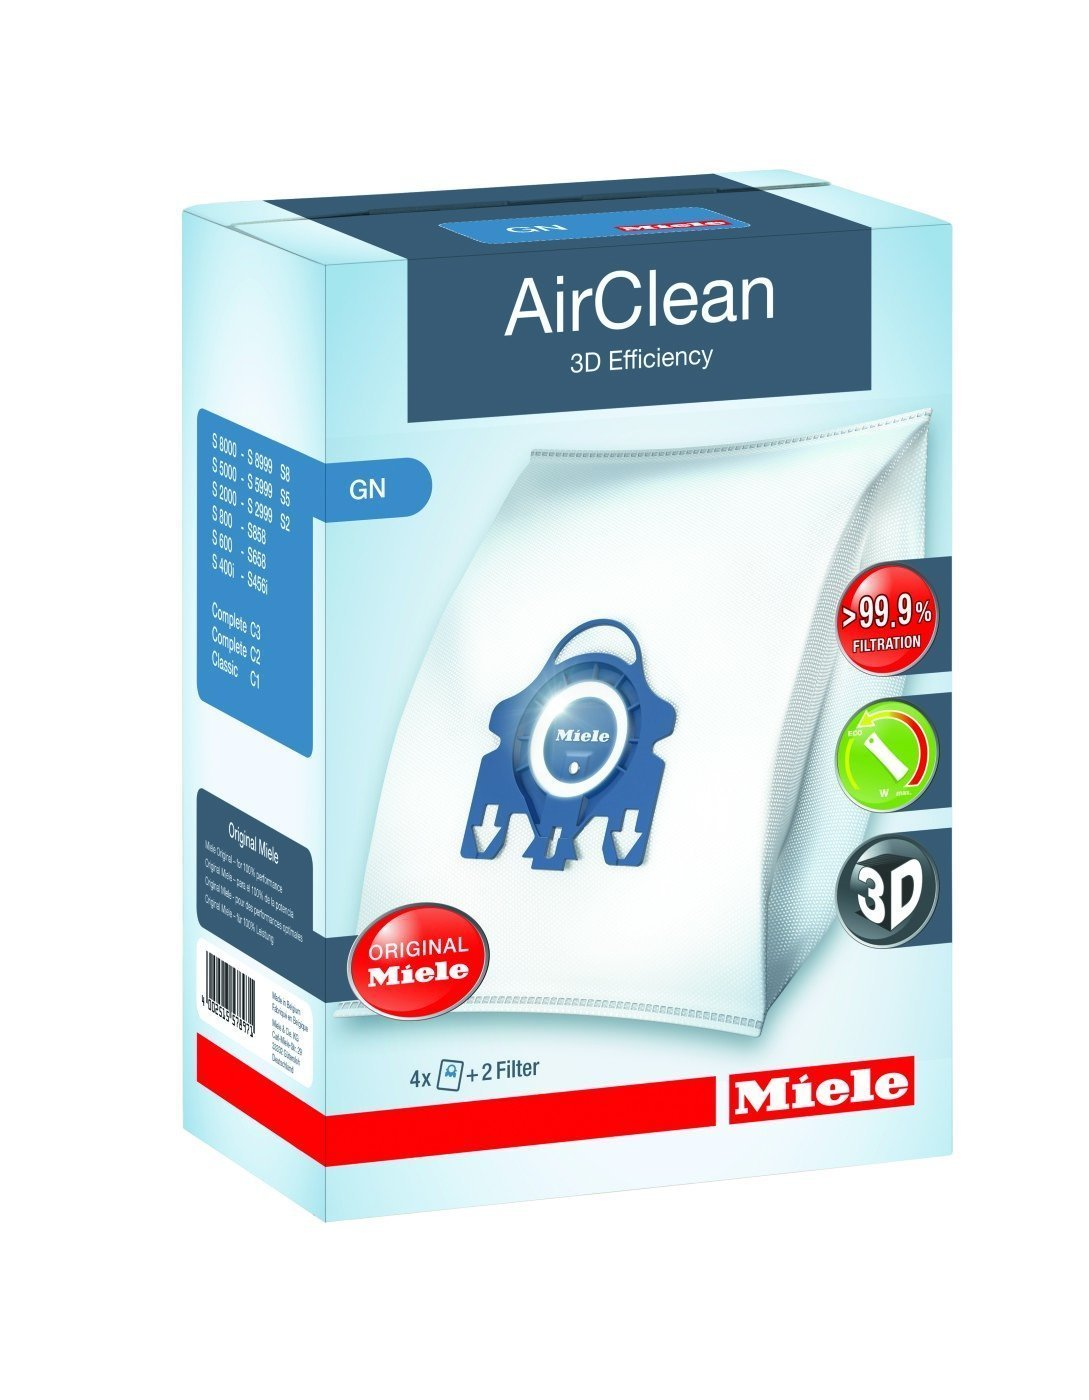 Miele 10123210 AirClean 3D Efficiency Dust Bag, Type GN, 4 Bags & 2 Filters by Miele